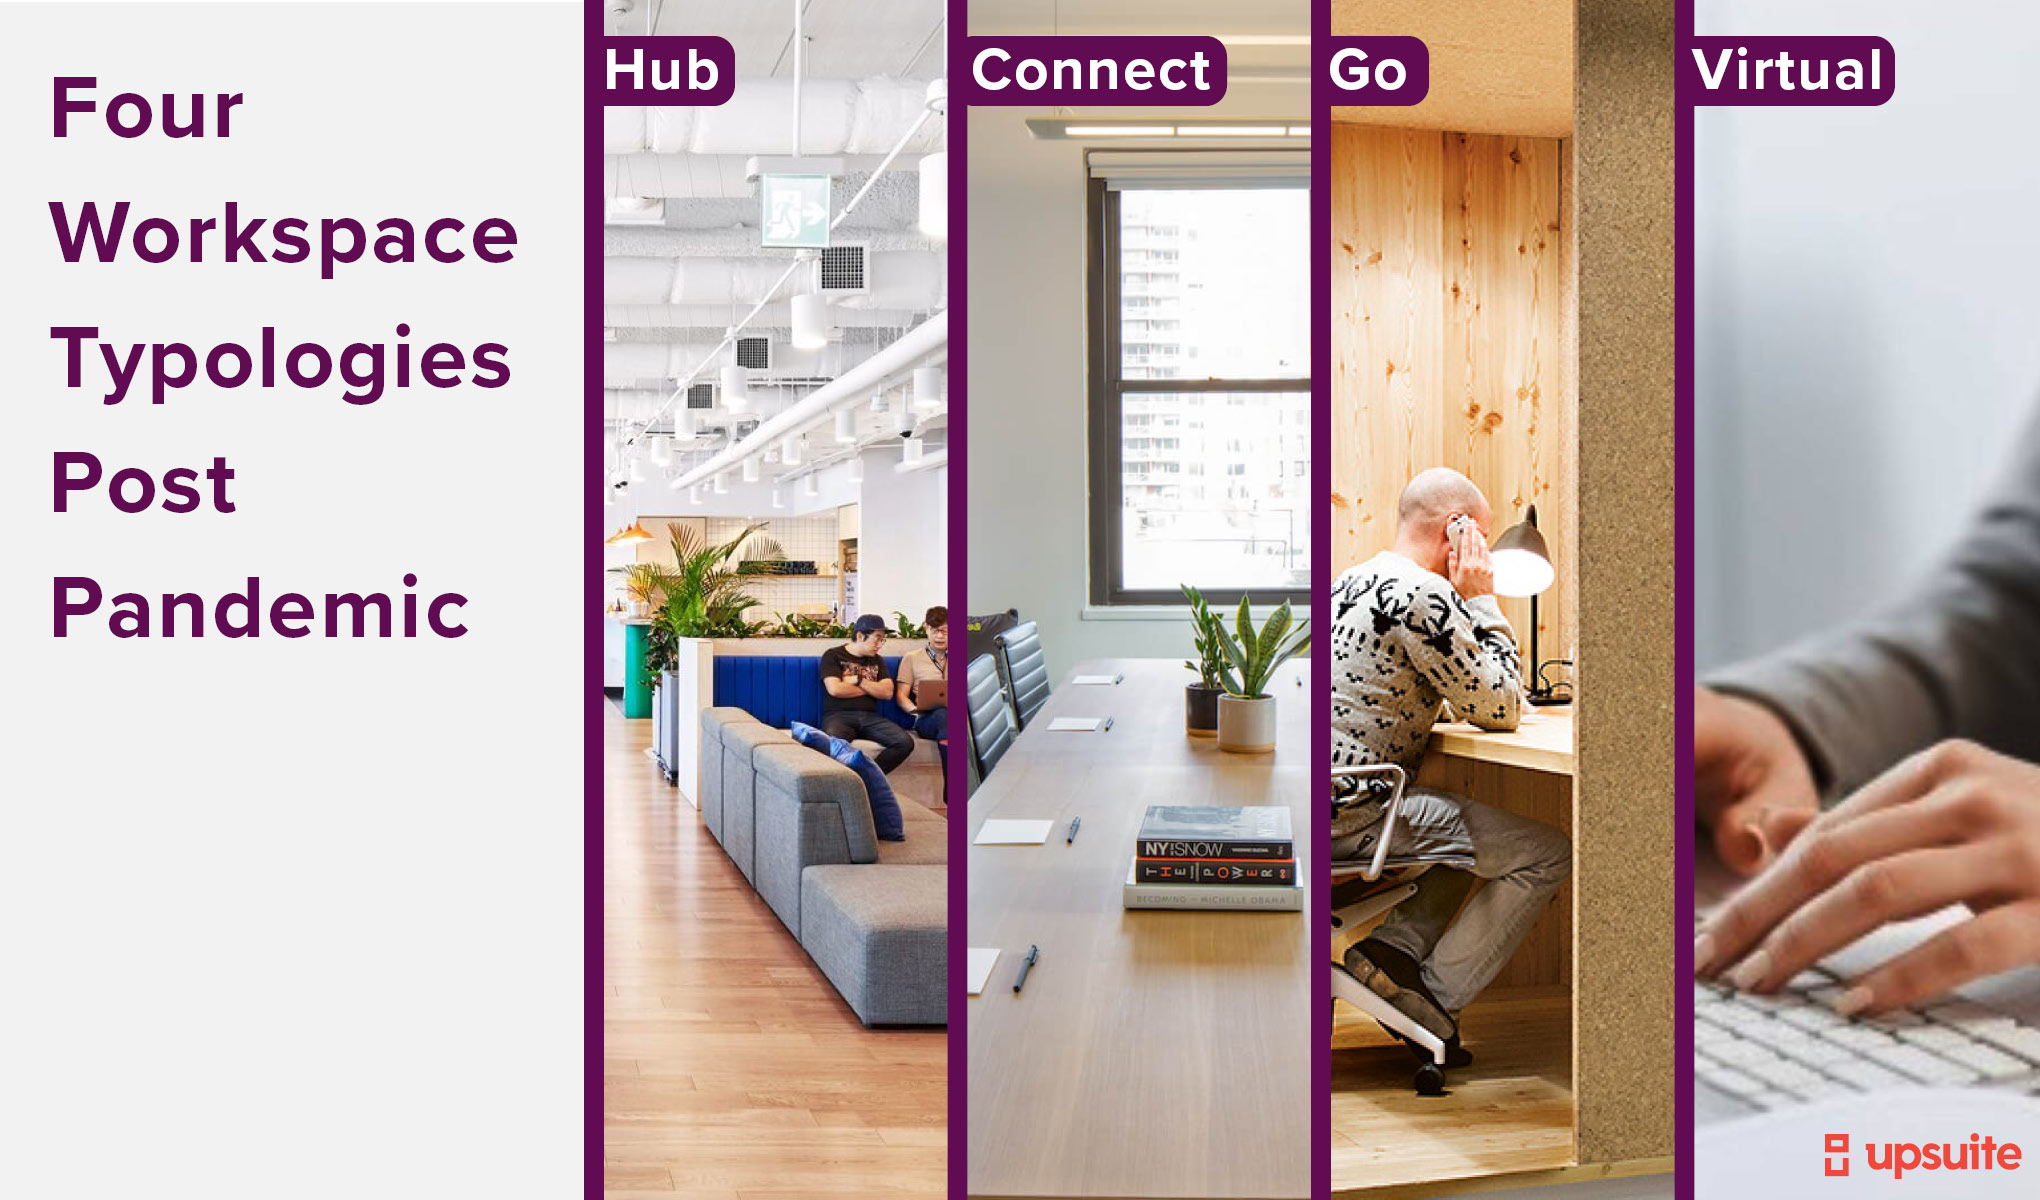 Teams will find workspace that matches these four types